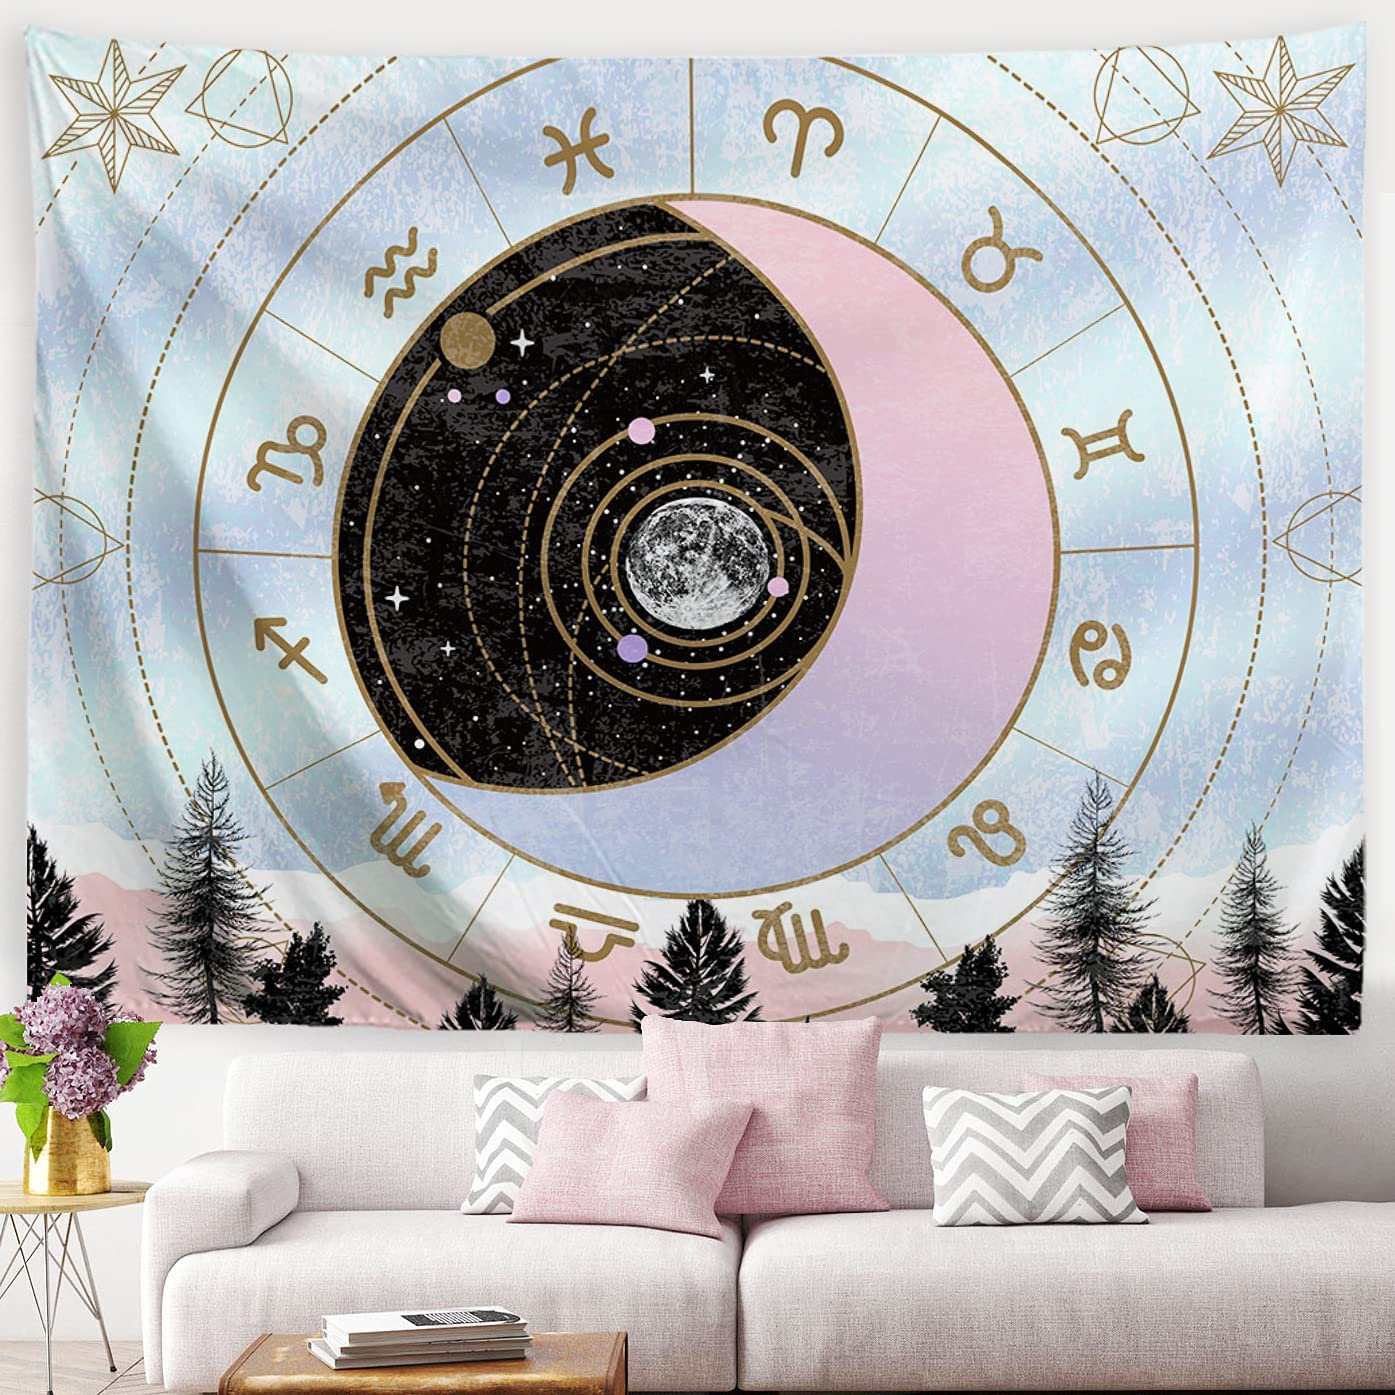 MENORCA Pink Moon Phase Constellation Wall Tapestry For Teen Bedroom Aesthetic, Astrology Tapestry Zodiac Sign Tapestry Celestial Tapestry Galaxy Witchy Room Decor- 59 Inch*40Inch-Small